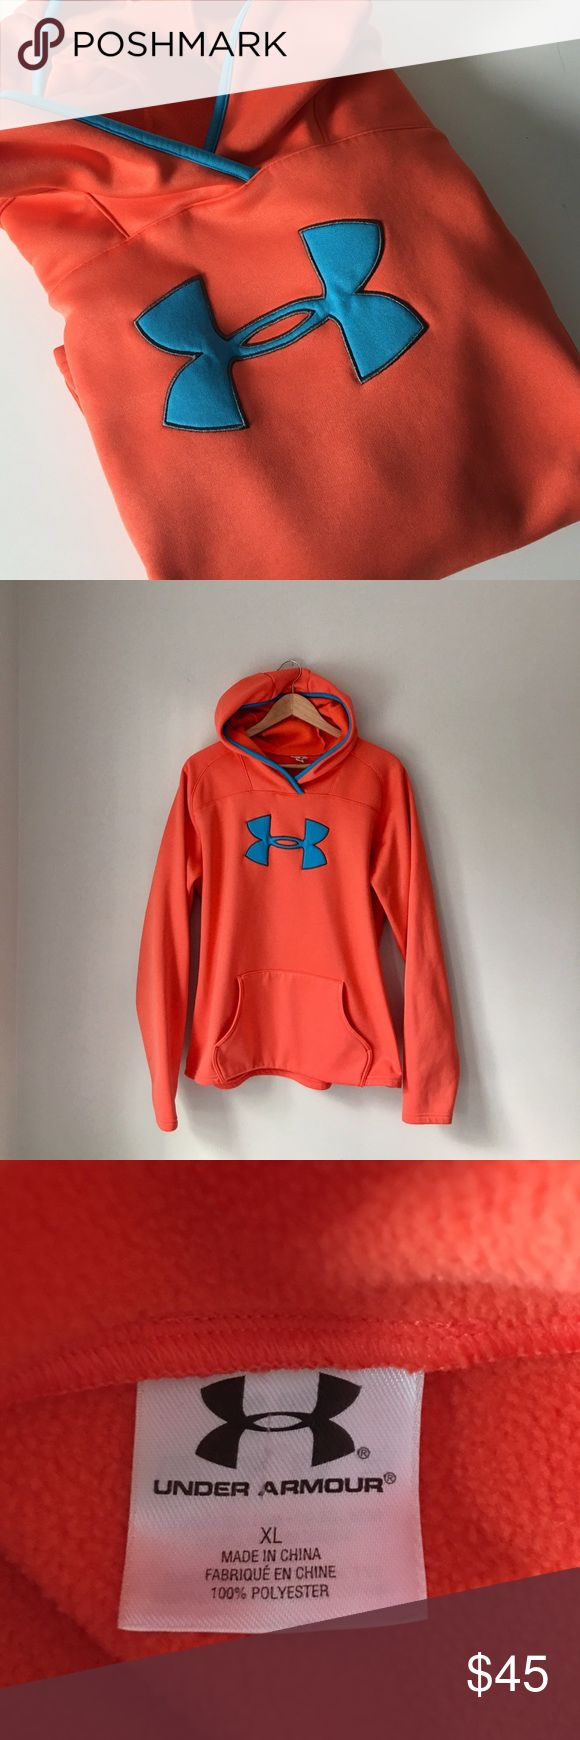 Under Armour Orange Hoodie Under Armour Orange/blue hoodie. Fleece lined interior. Size XL. Great condition. Under Armour Tops Sweatshirts & Hoodies